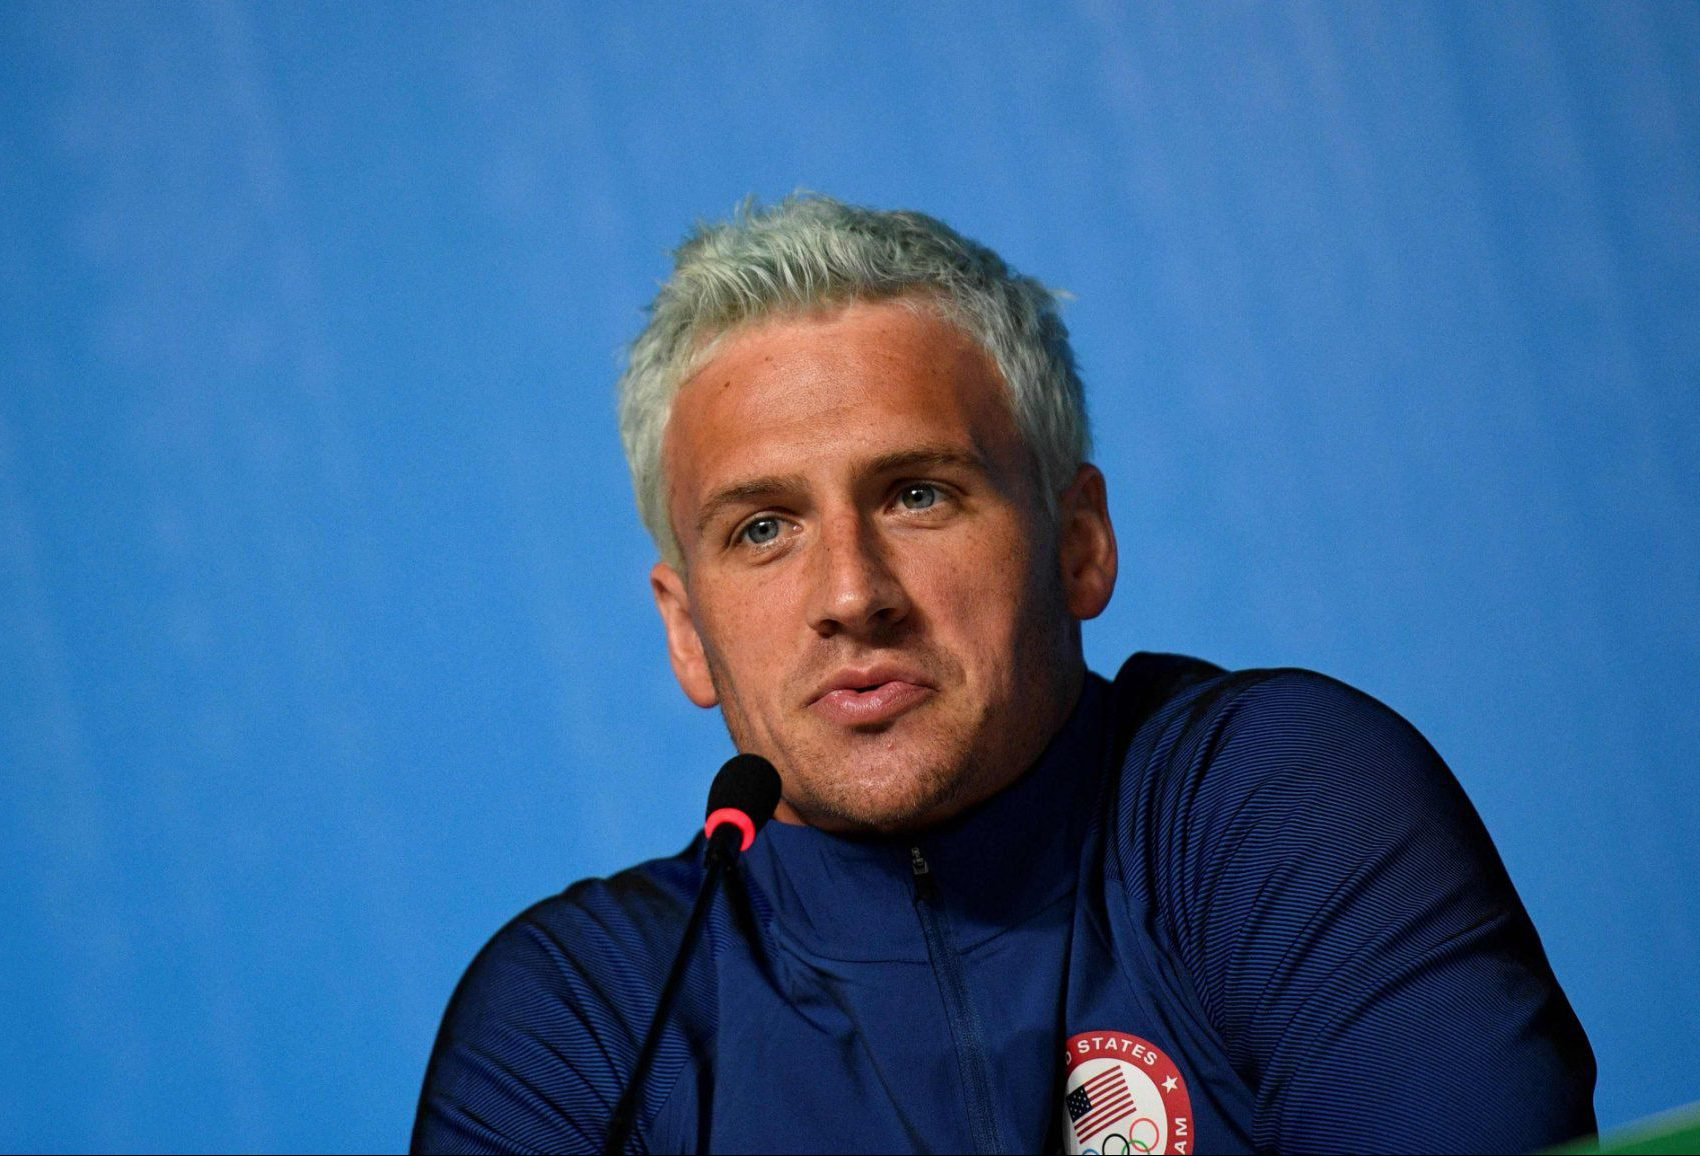 Ryan Lochte charged with making fake police statement